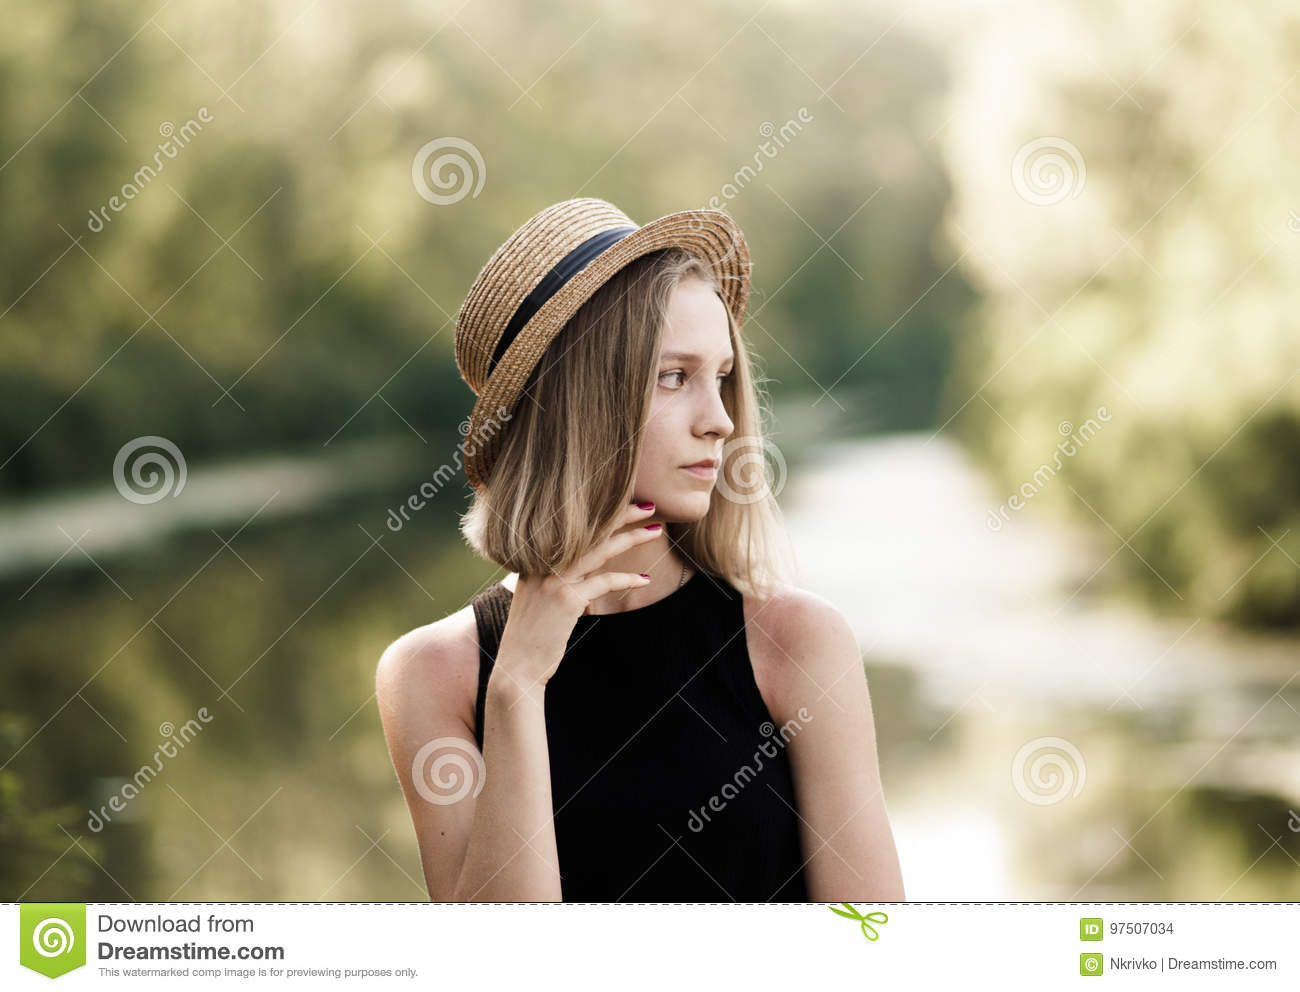 d2bff3d65f4 Profile Of A Pretty Girl With Short Hair In A Straw Hat Over Nat ...